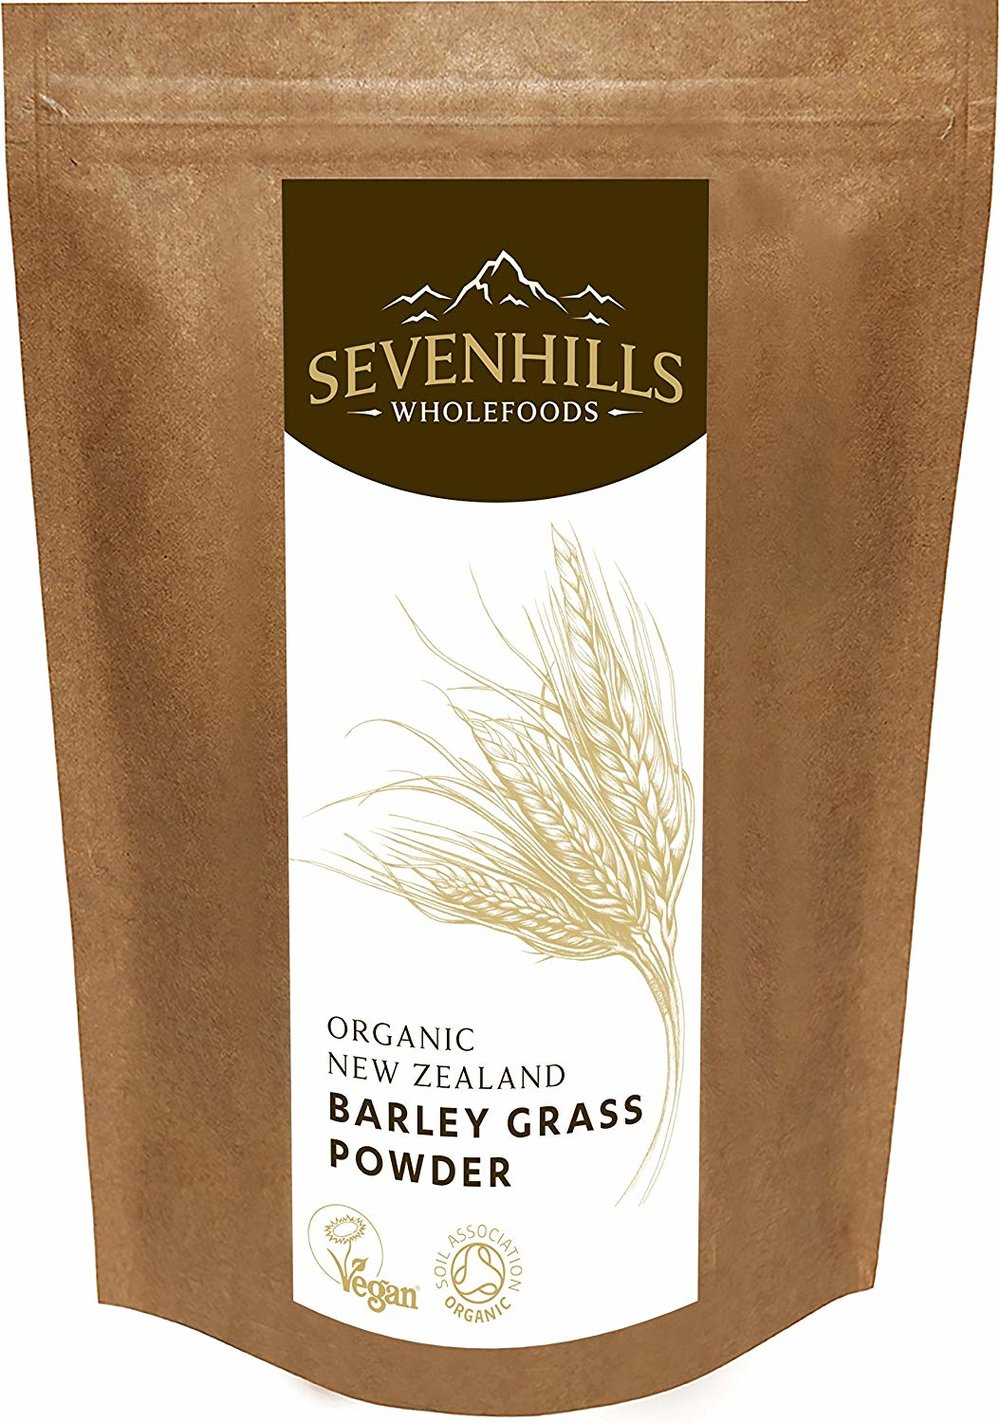 Sevenhills Wholefoods Organic New Zealand Barley Grass Powder -